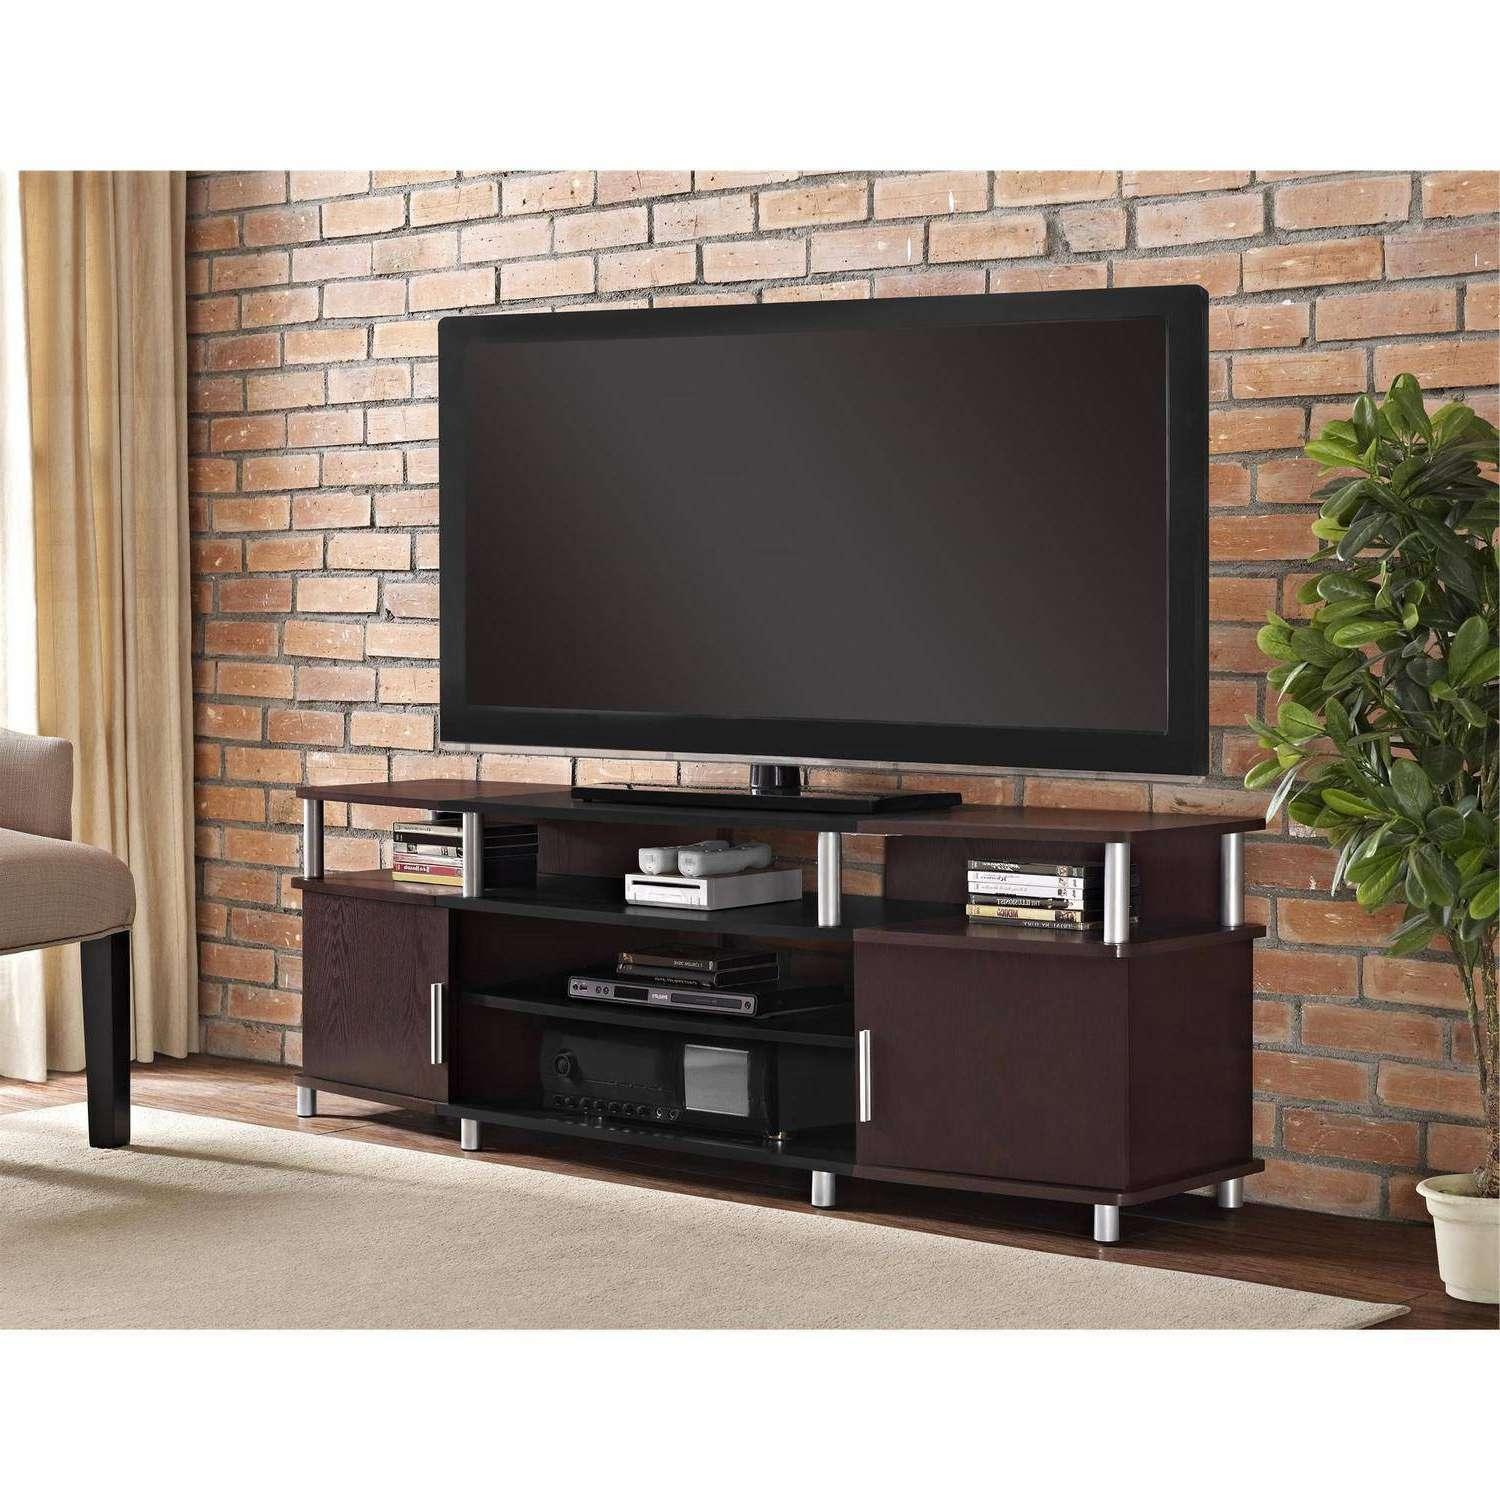 Tv Stands & Entertainment Centers – Walmart Inside Tv Stands 40 Inches Wide (View 13 of 15)